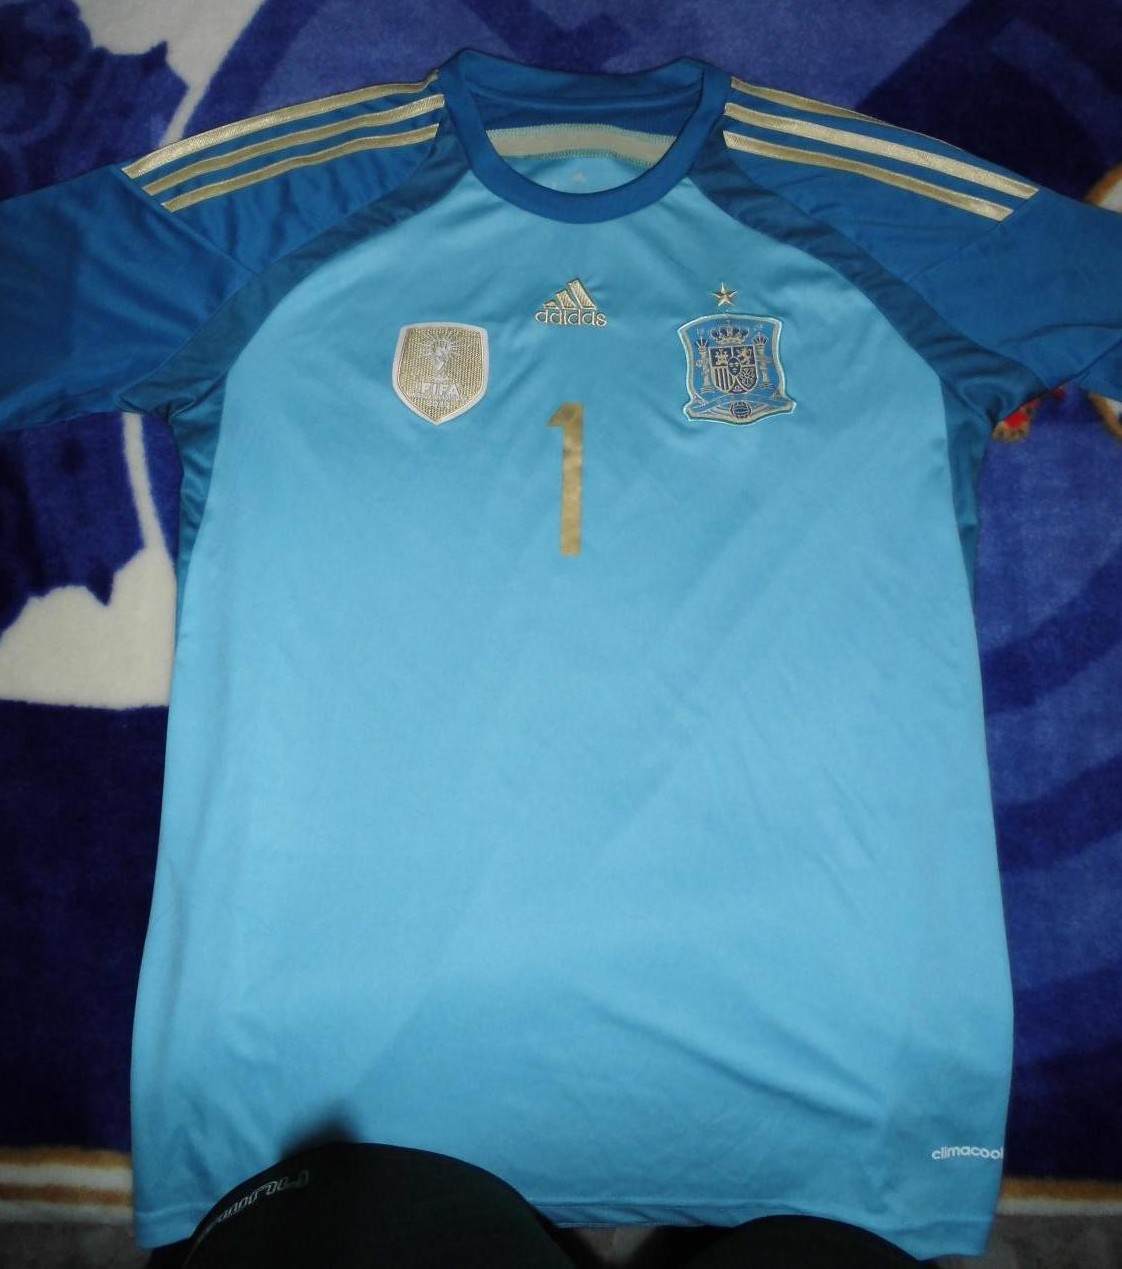 Spain Goalkeeper Football Shirt 2013 2014 Added On 2015